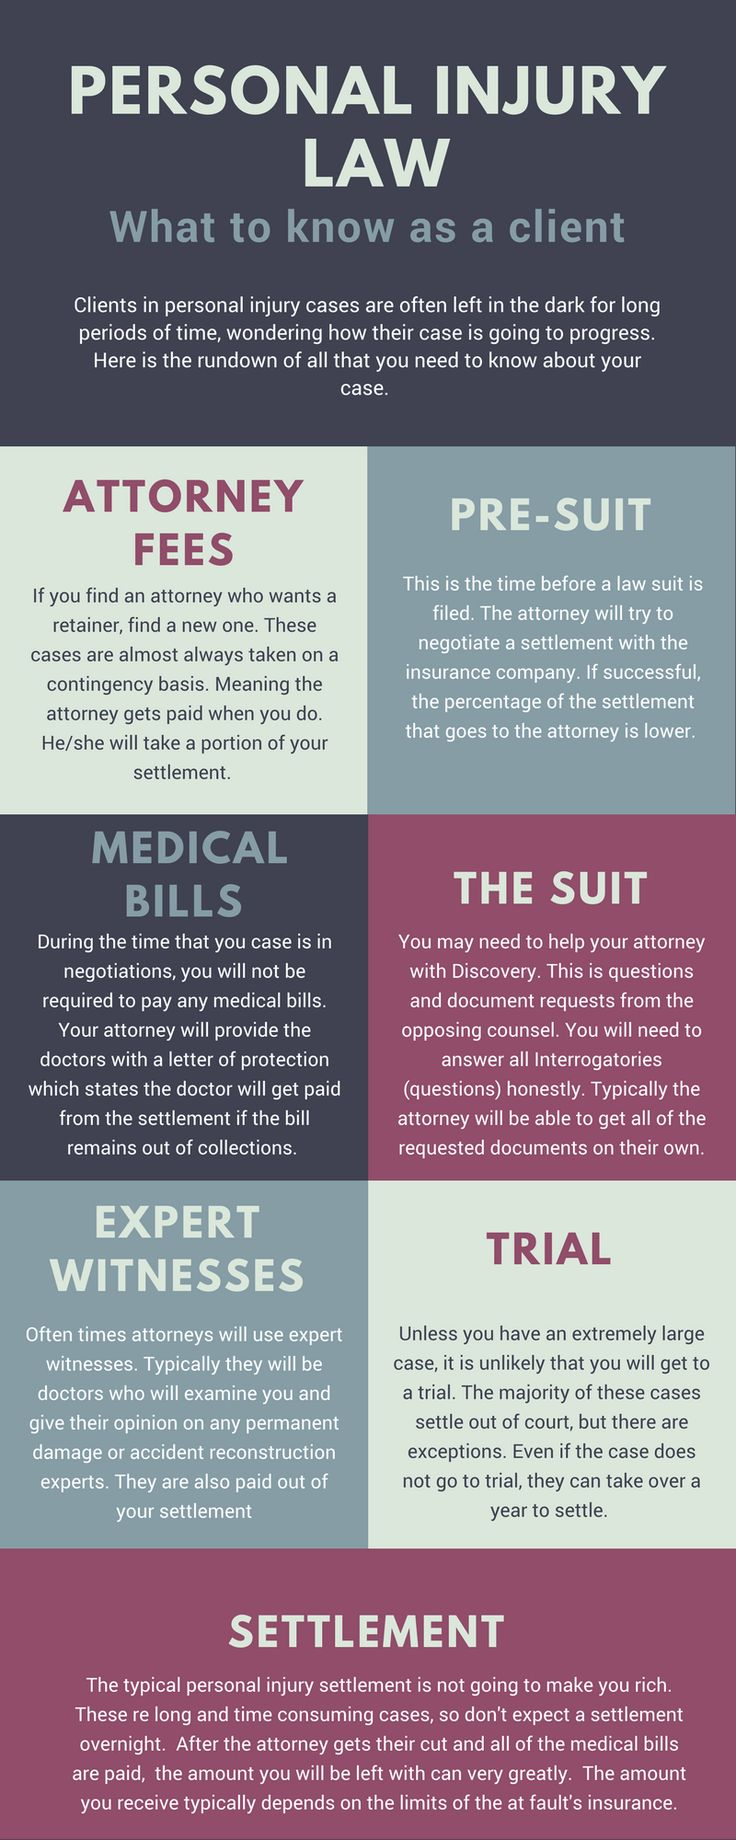 What to do After a Car Wreck: A Personal Injury Paralegal's PerspectivePretty Opinionated